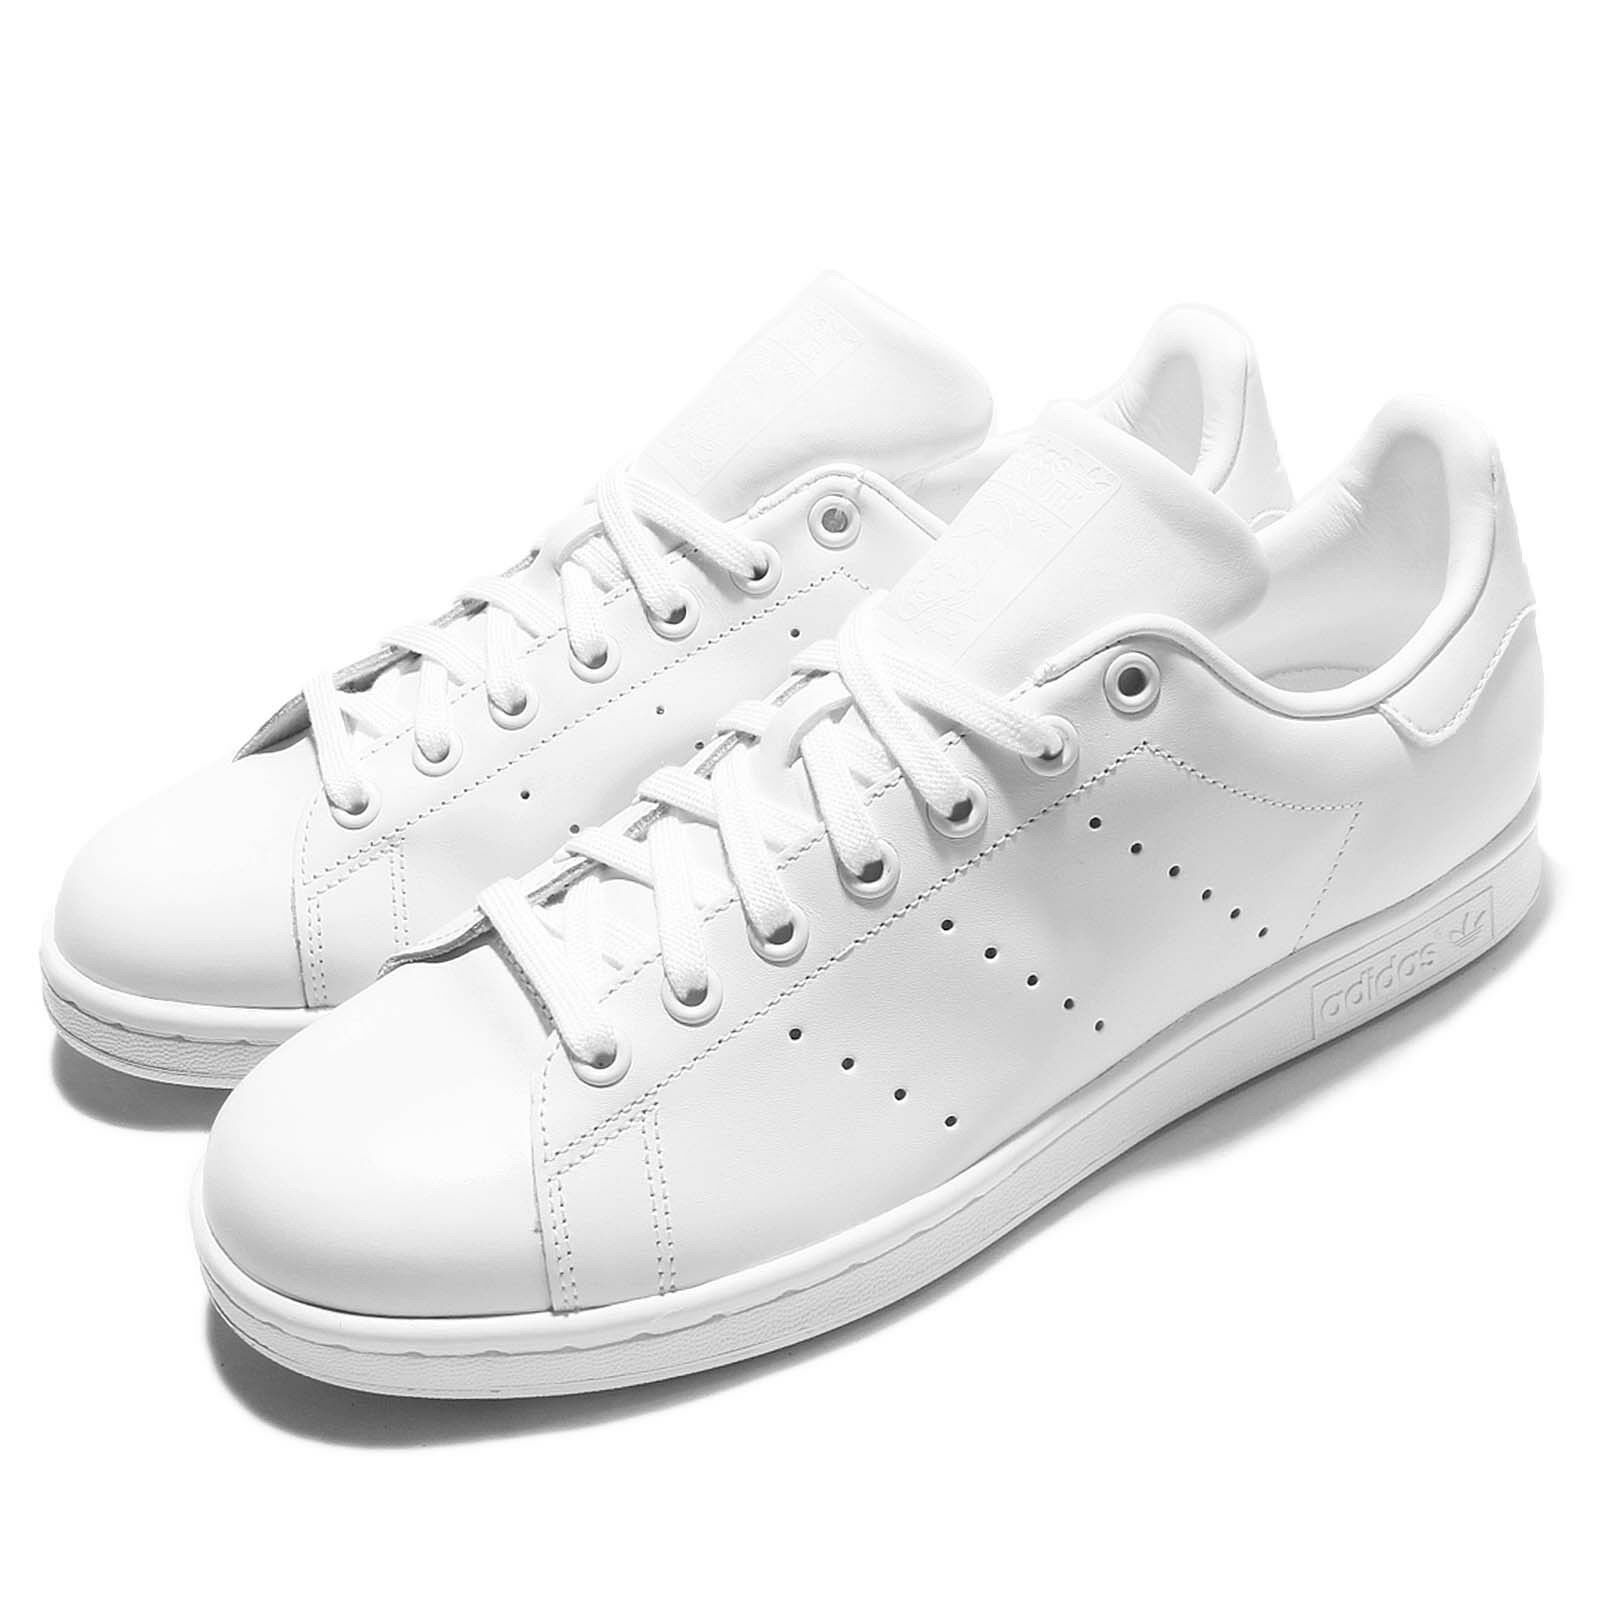 Adidas Originals Stan  Smith Triple Blanco Monocromo Hombres Zapatos  Stan Tenis S75104 127673